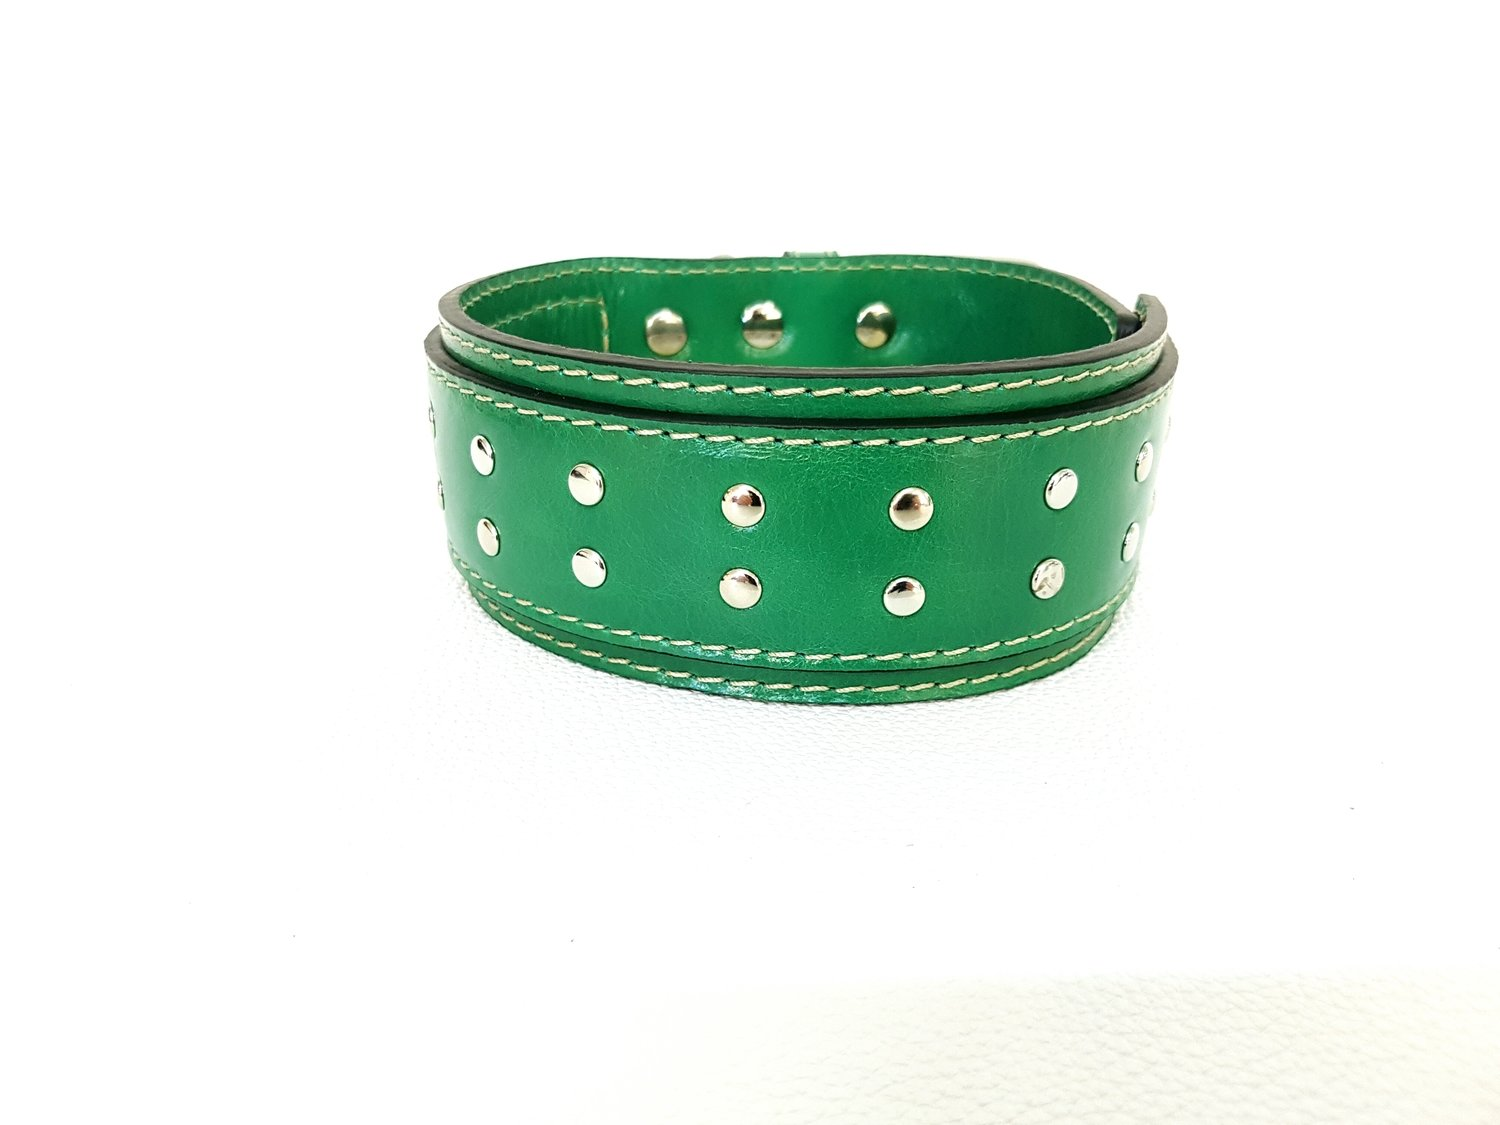 Verde / Green (5 cm / 1,97 inches)